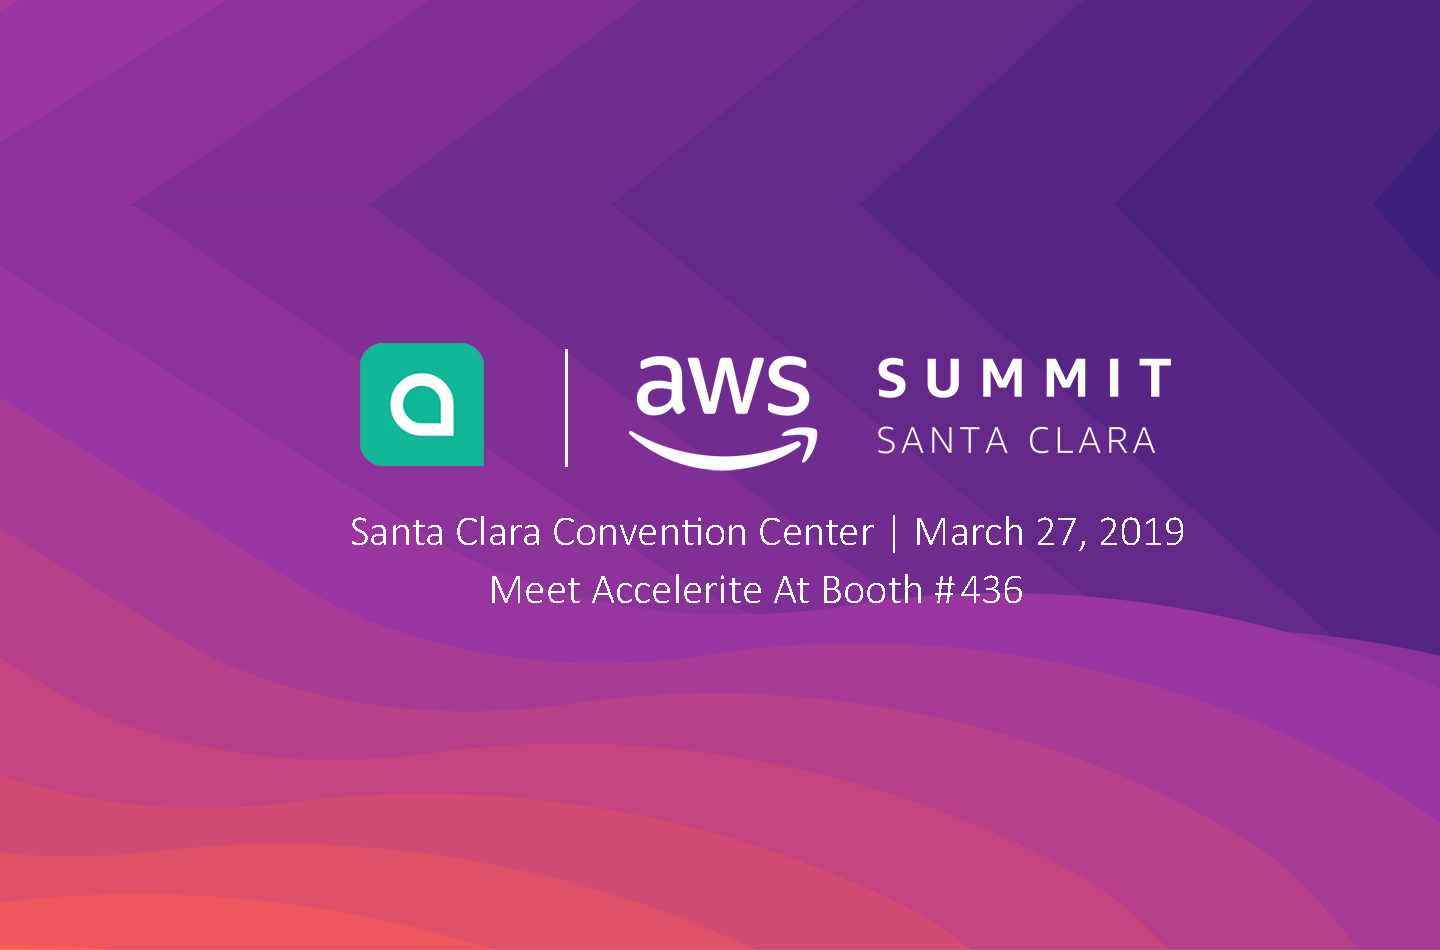 Meet the Accelerite ShareInsights Team at the AWS Summit in